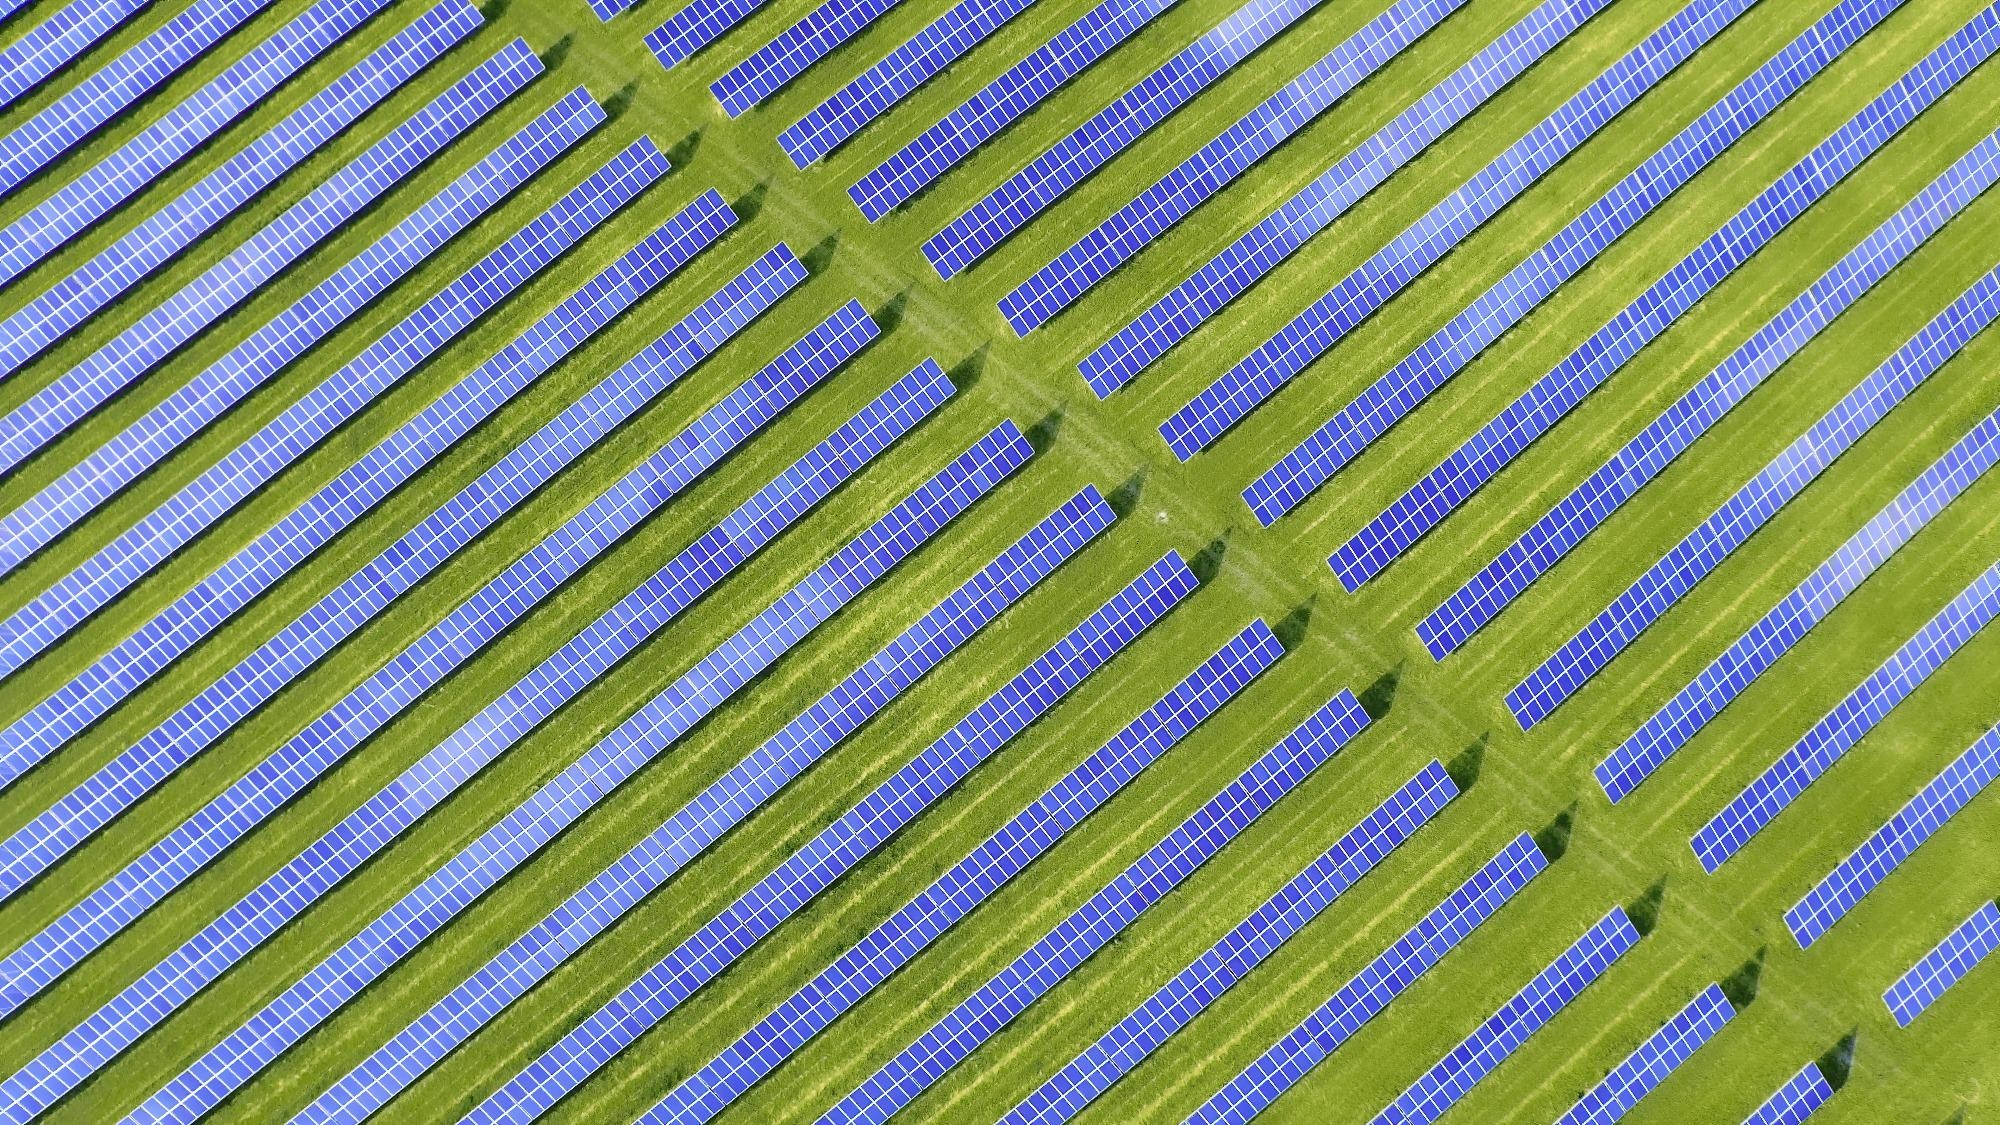 One-Sided Nanotexturing Increases Efficiency in Solar Cells.